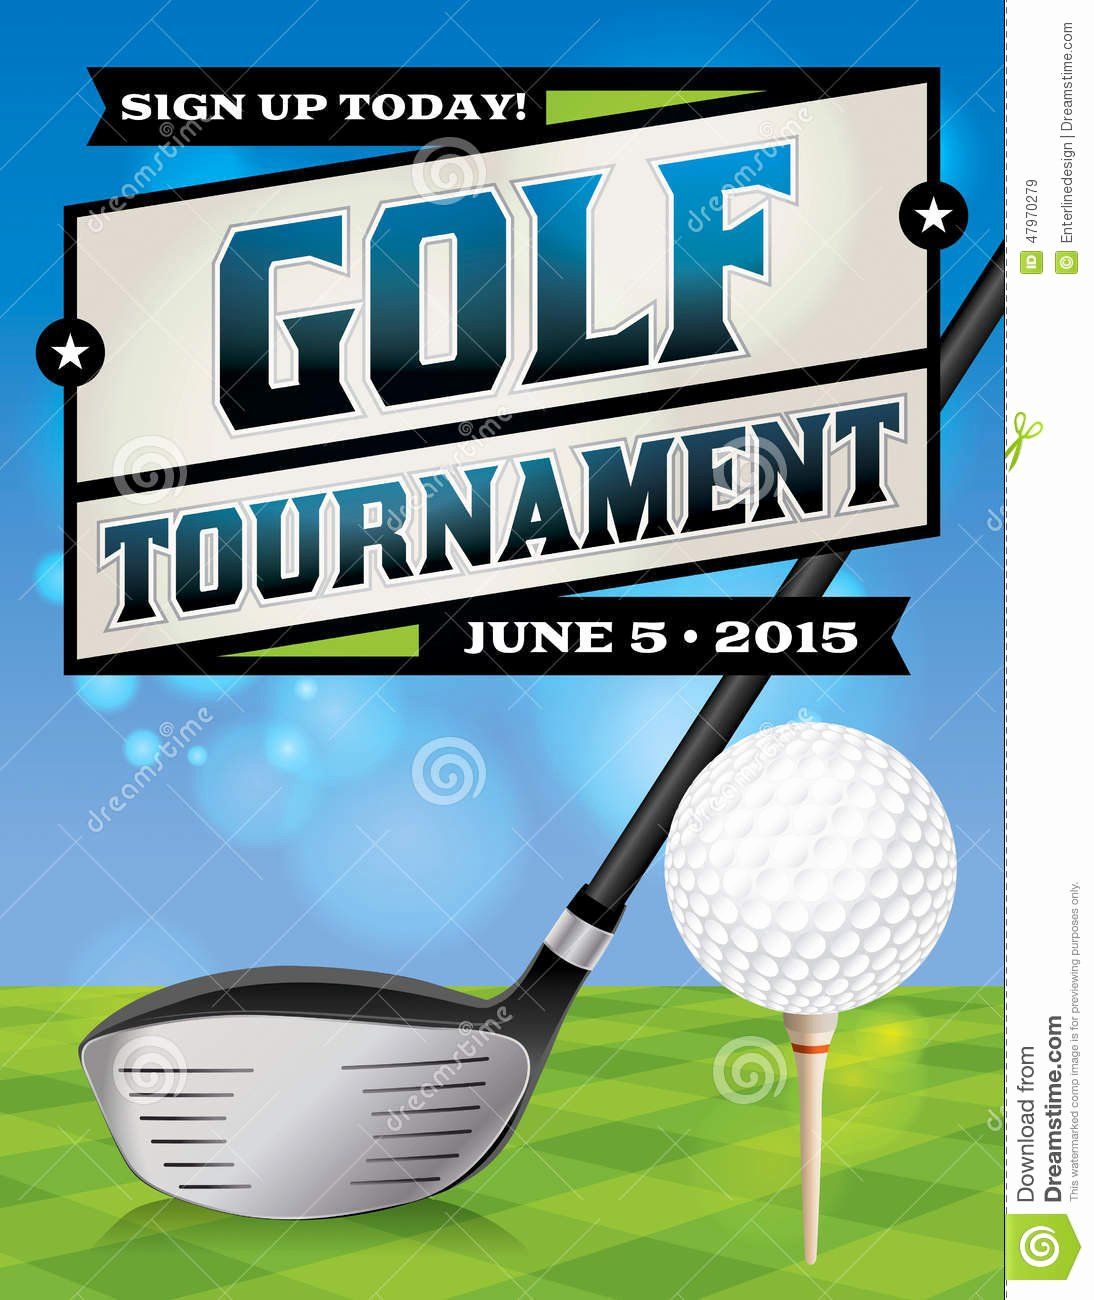 Golf tournament Flyer Illustration Stock Vector Image